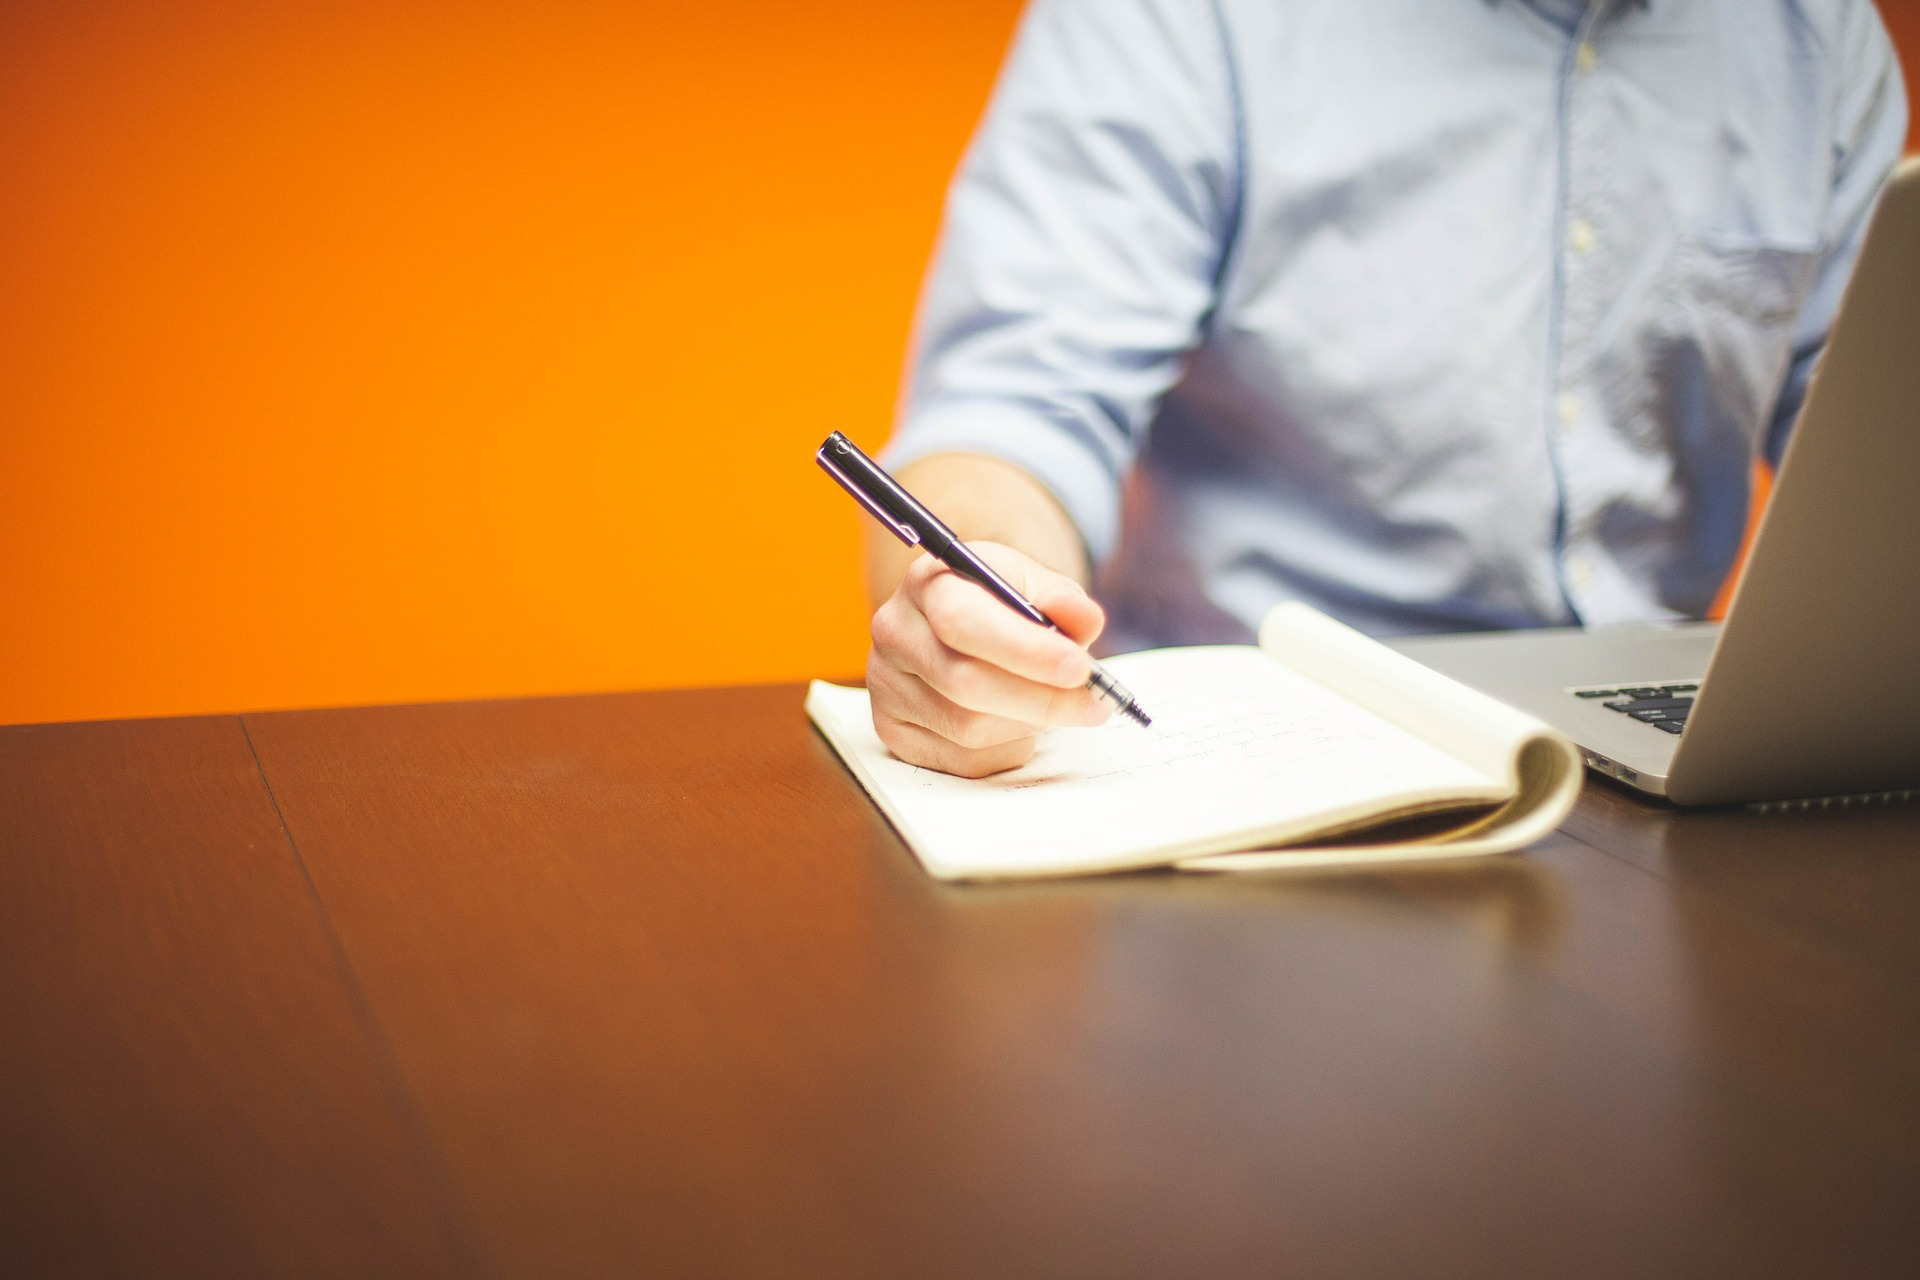 A person writes notes on a notepad whilst reading something off a laptop in a brightly painted room